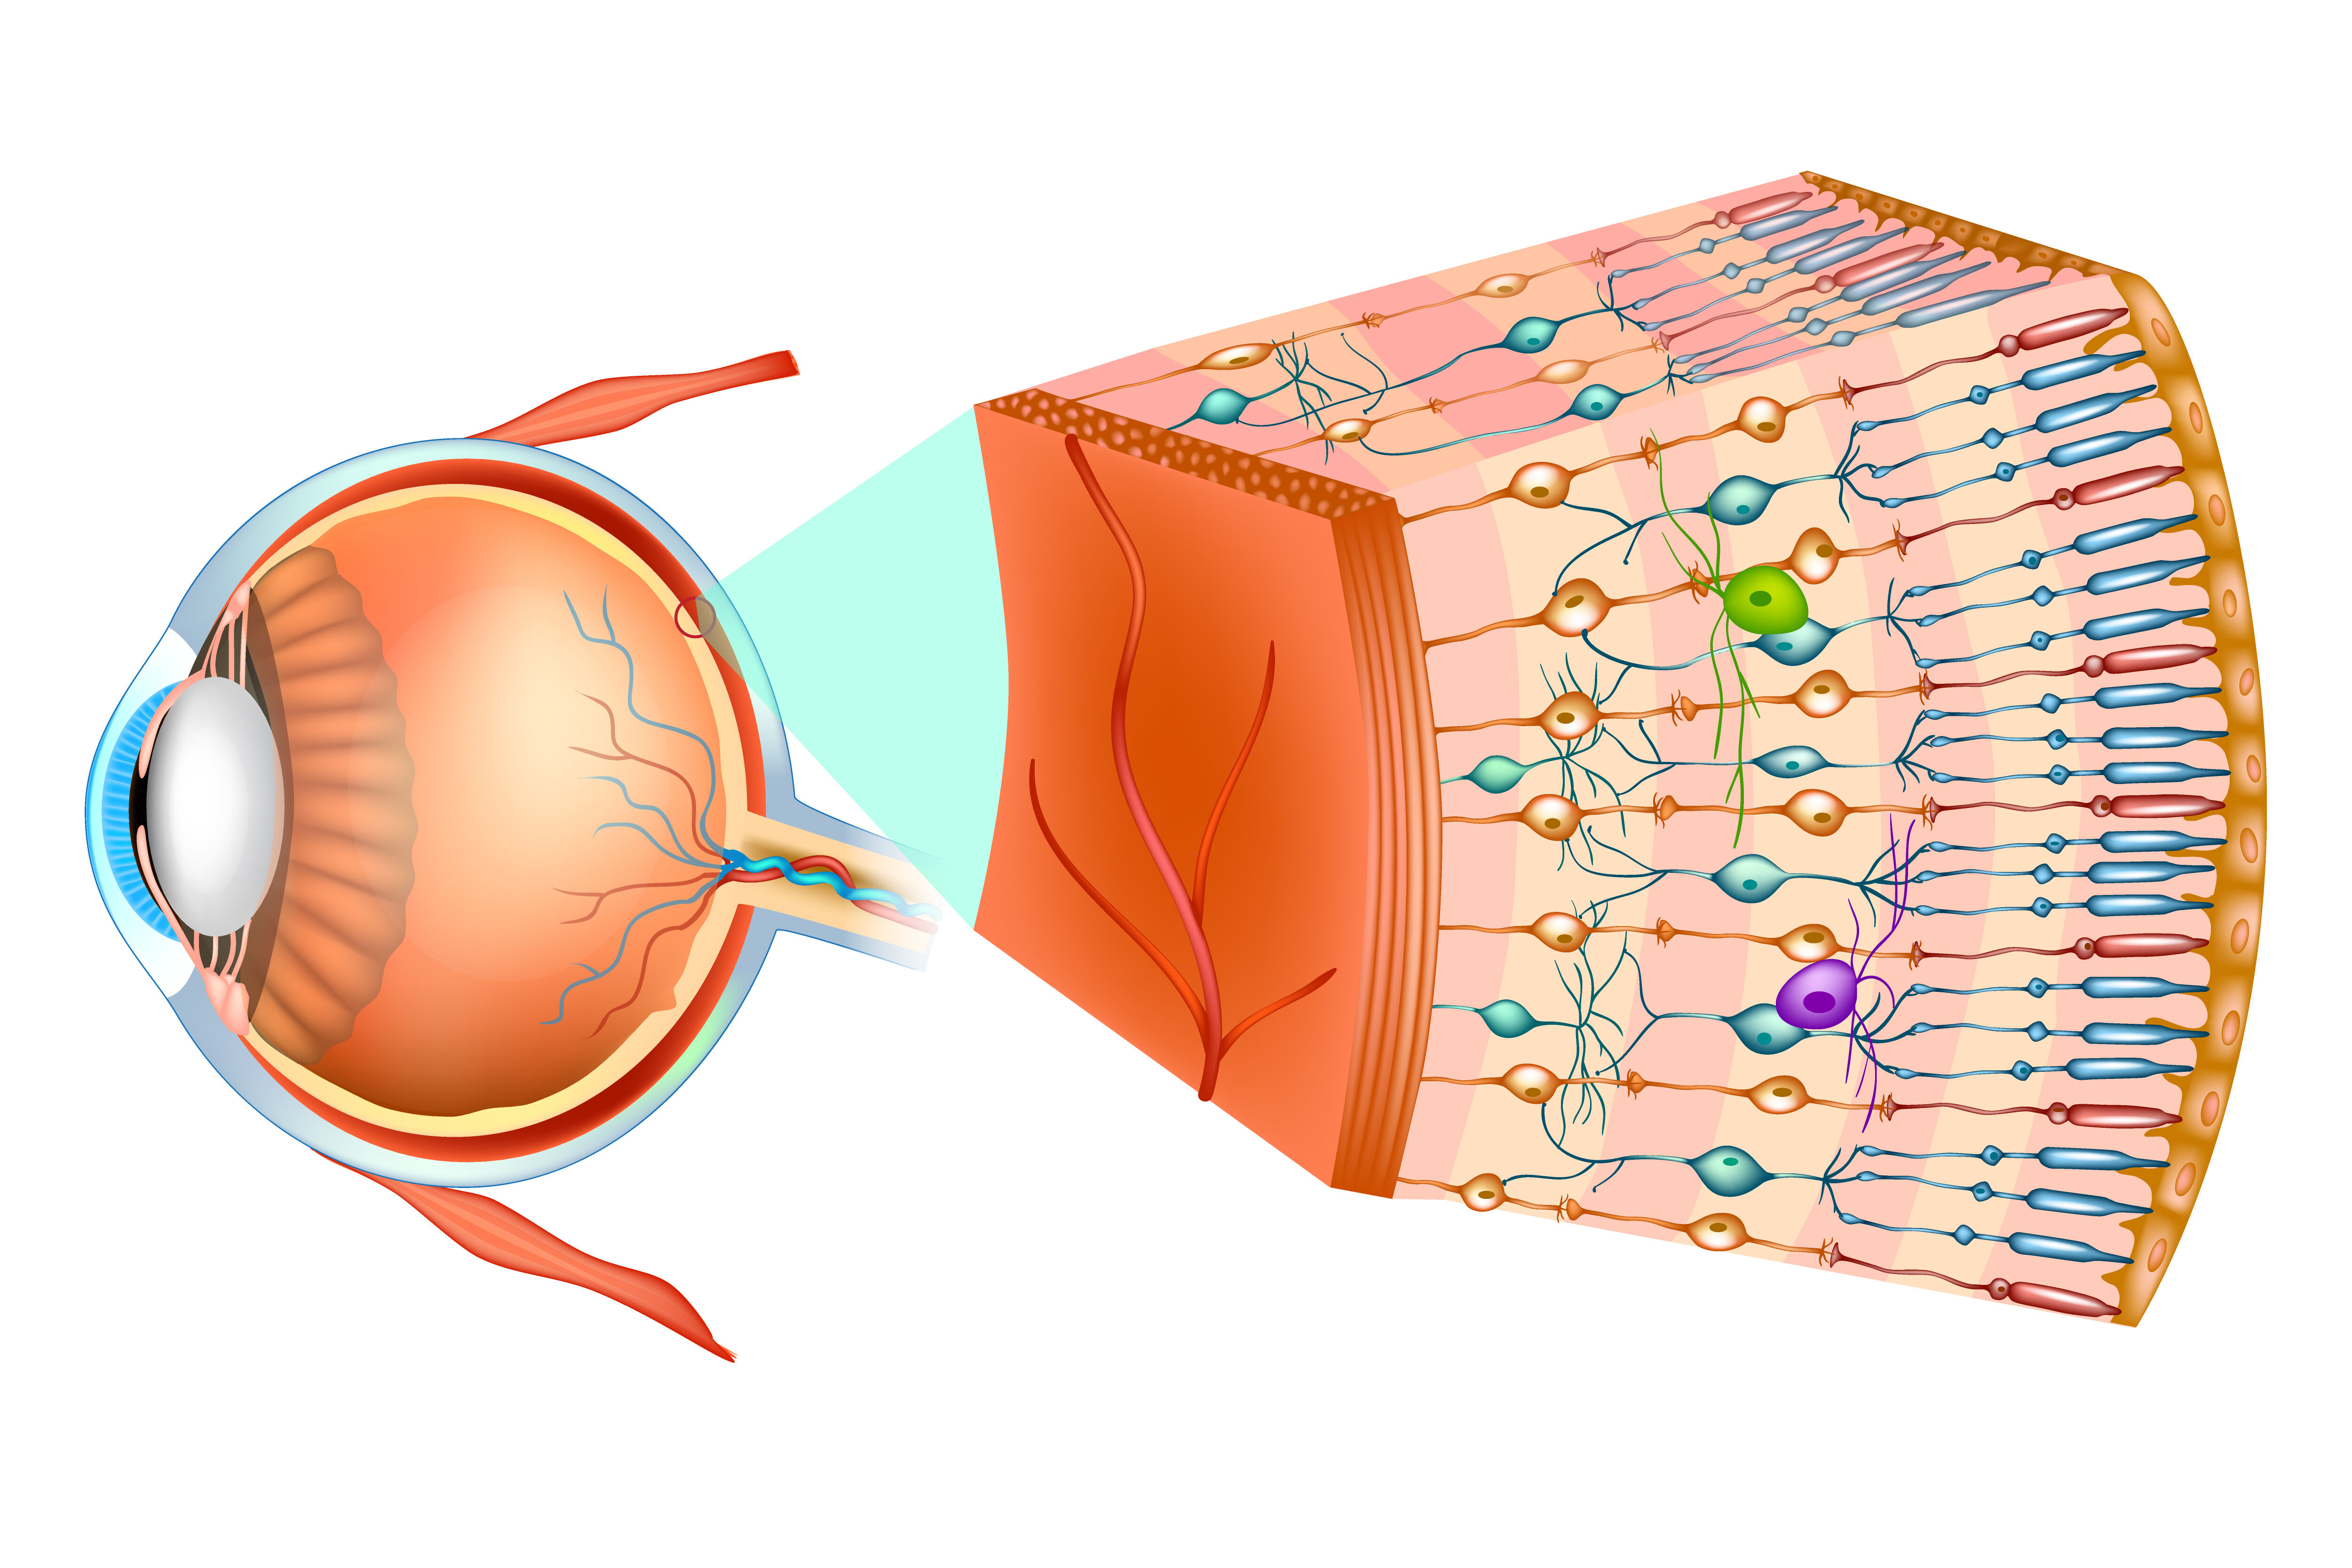 retina is located in the inner part